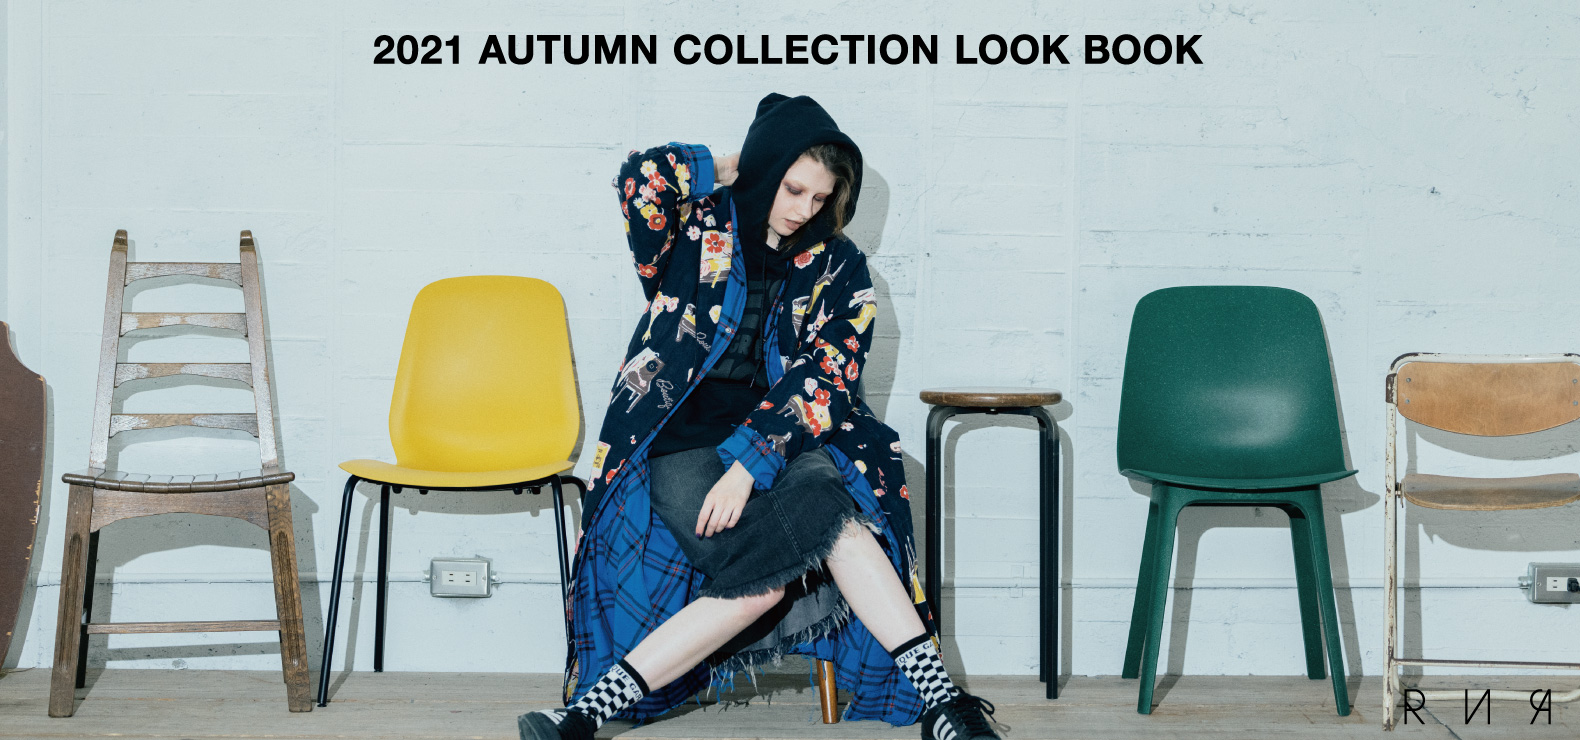 2021 AUTUMN COLLECTION LOOK BOOK